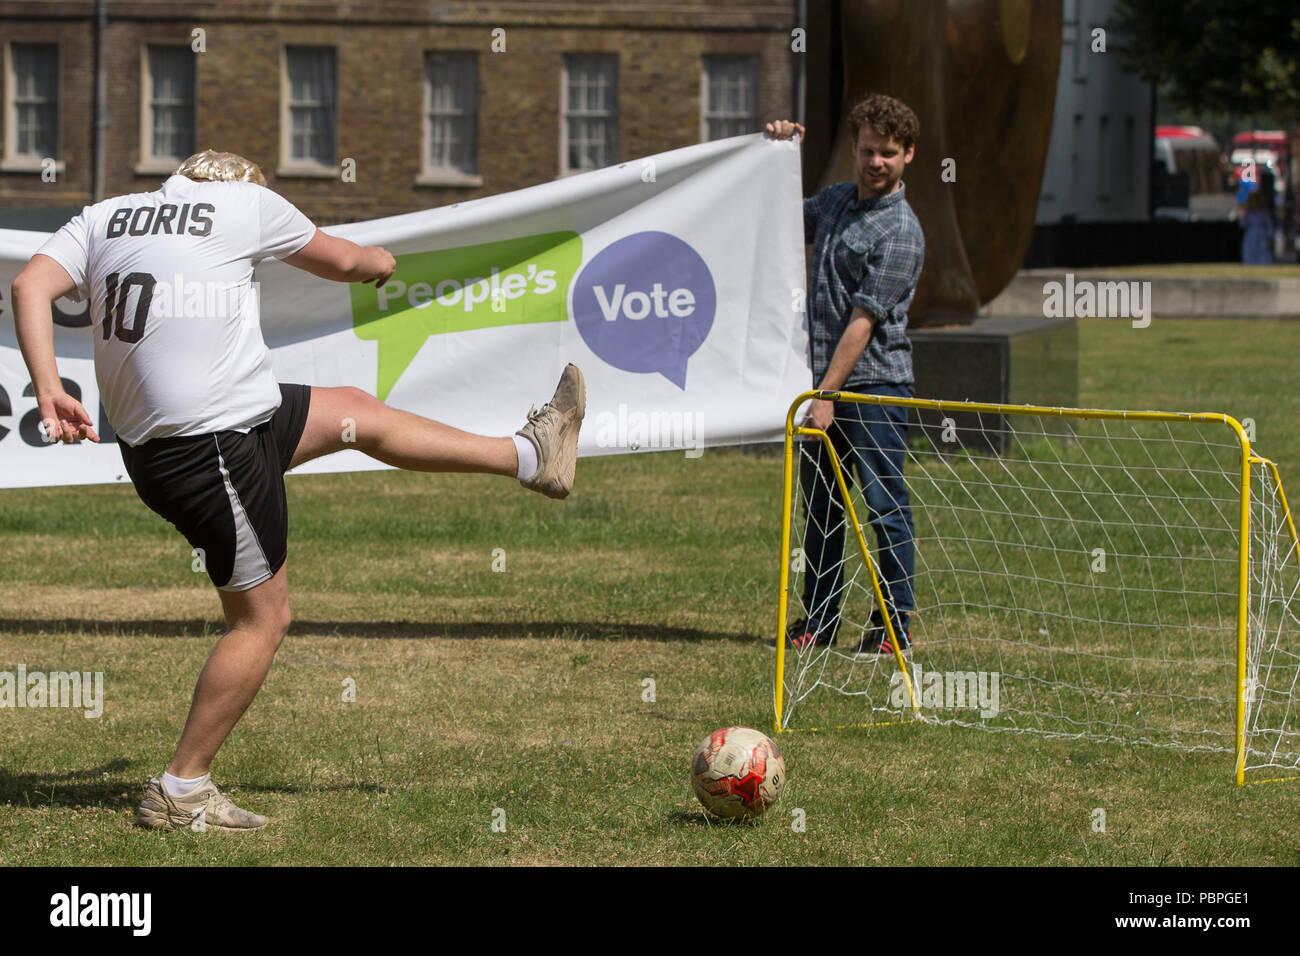 The People's Vote campaign hold World Cup event on College Green to highlight the shambolic state of Brexit on the day the EU Council meets for crunch talks.  Activists from the People's Vote campaign play football on College Green dressed as Brexiters including Boris Johnson, Jacob Rees-Mogg, Nigel Farage and Theresa May.  Featuring: Atmosphere, View Where: London, England, United Kingdom When: 28 Jun 2018 Credit: Wheatley/WENN - Stock Image